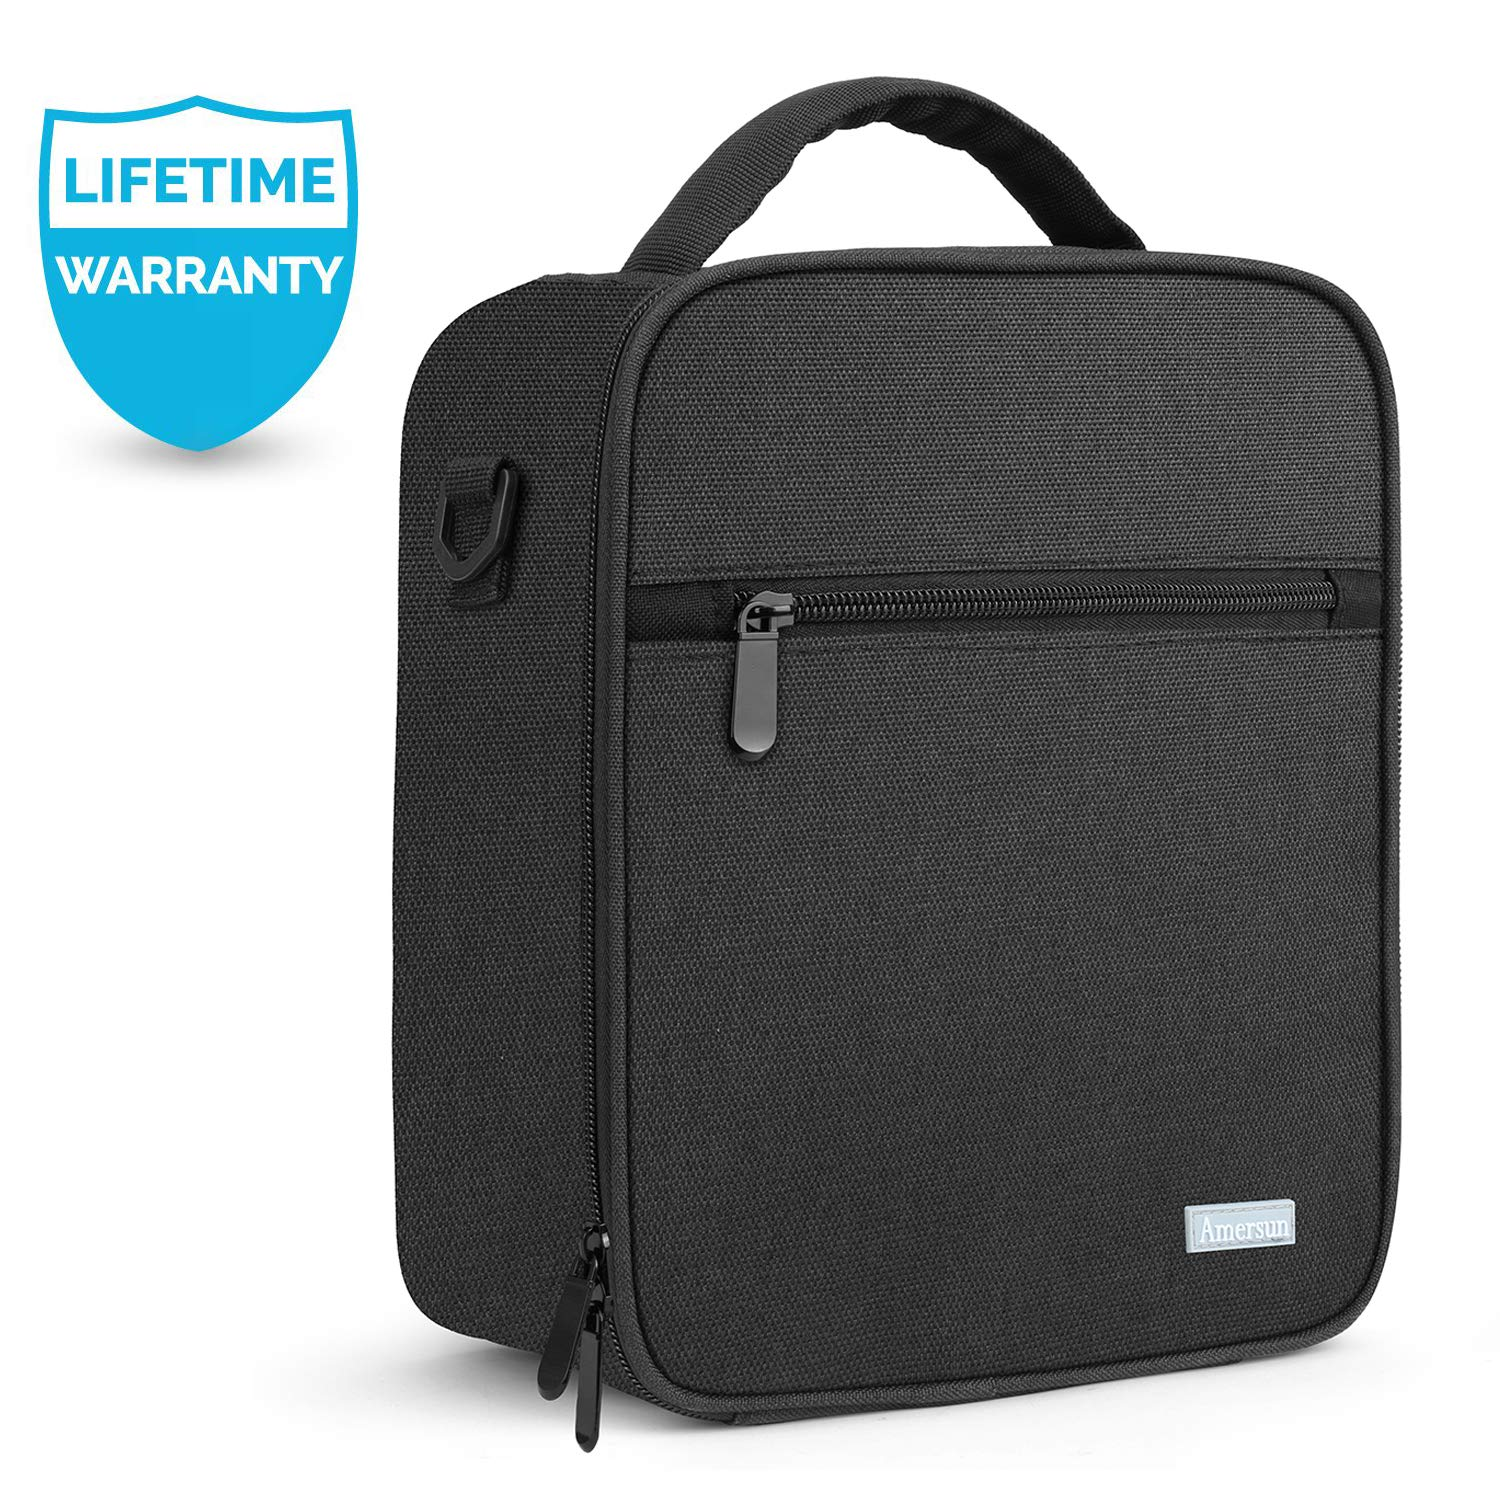 Lunch Bag with Firm Foil-BPA FREE, Amersun Original Reusable Insulated Lunch Box School Cooler Picnic Holder with Shoulder Strap for Kids Boys Men Women Girls,Spill-resistant & 2 Pockets (Black) by Amersun (Image #1)